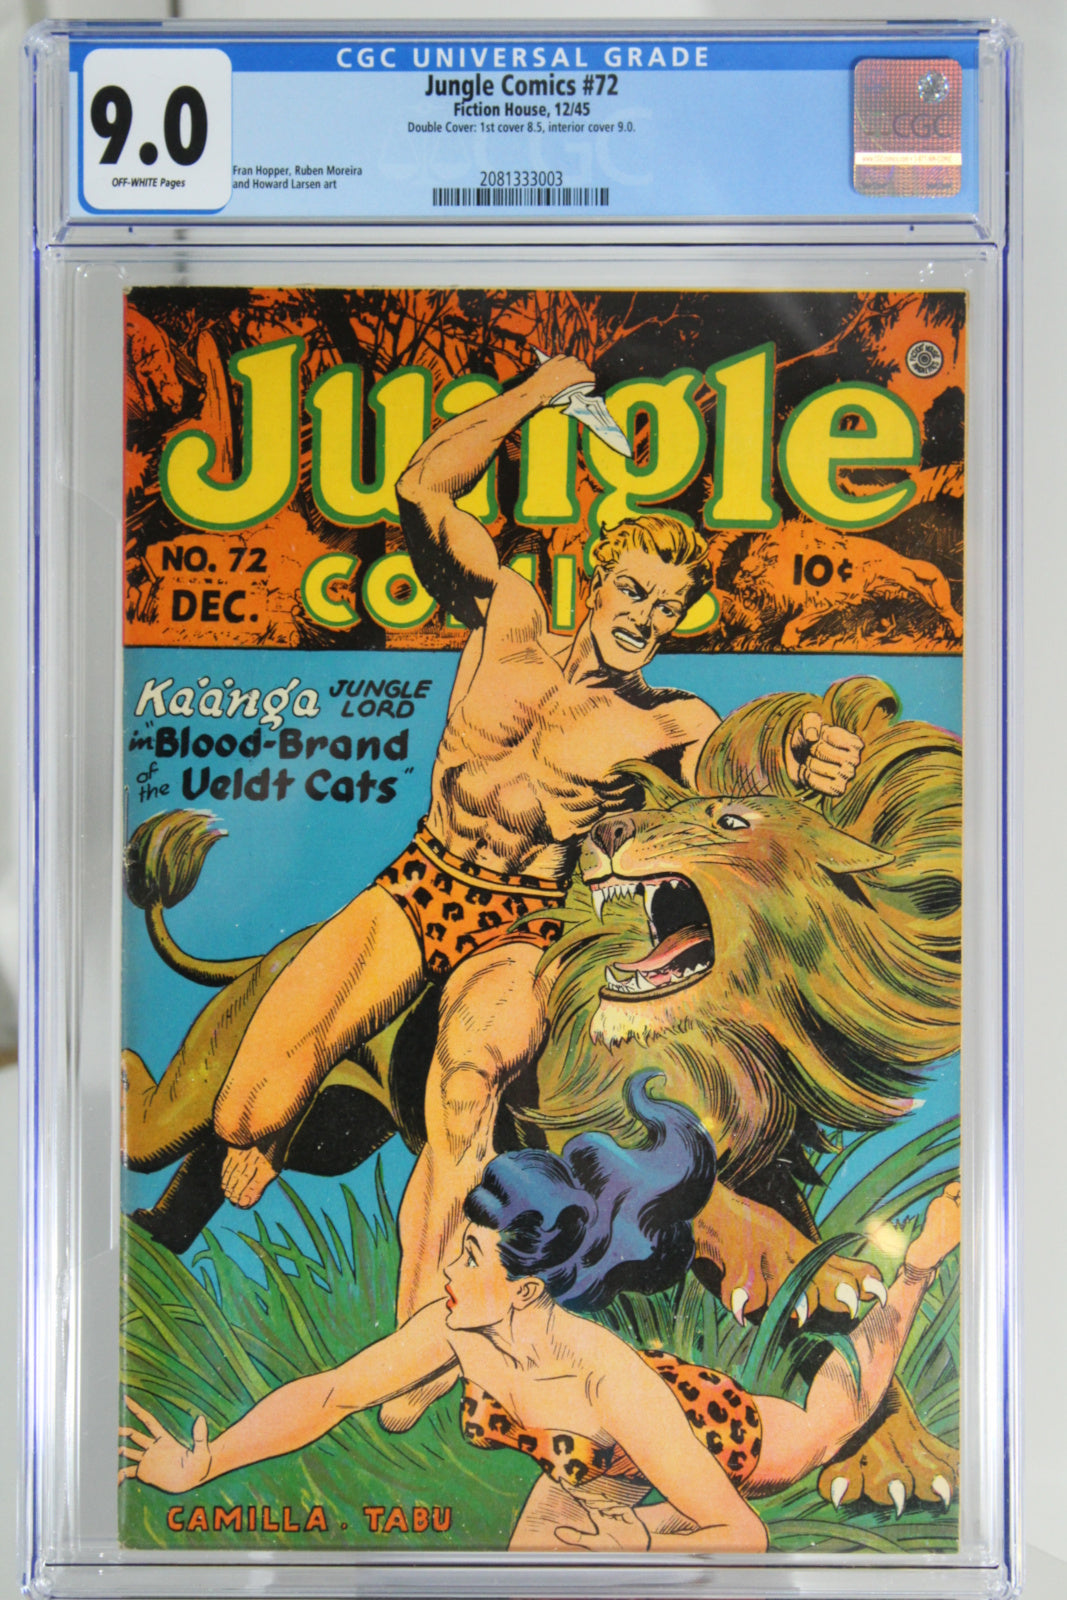 Jungle Comics #72 - CGC 9.8 - Double Cover: 1st 8.5, Interior 9.0